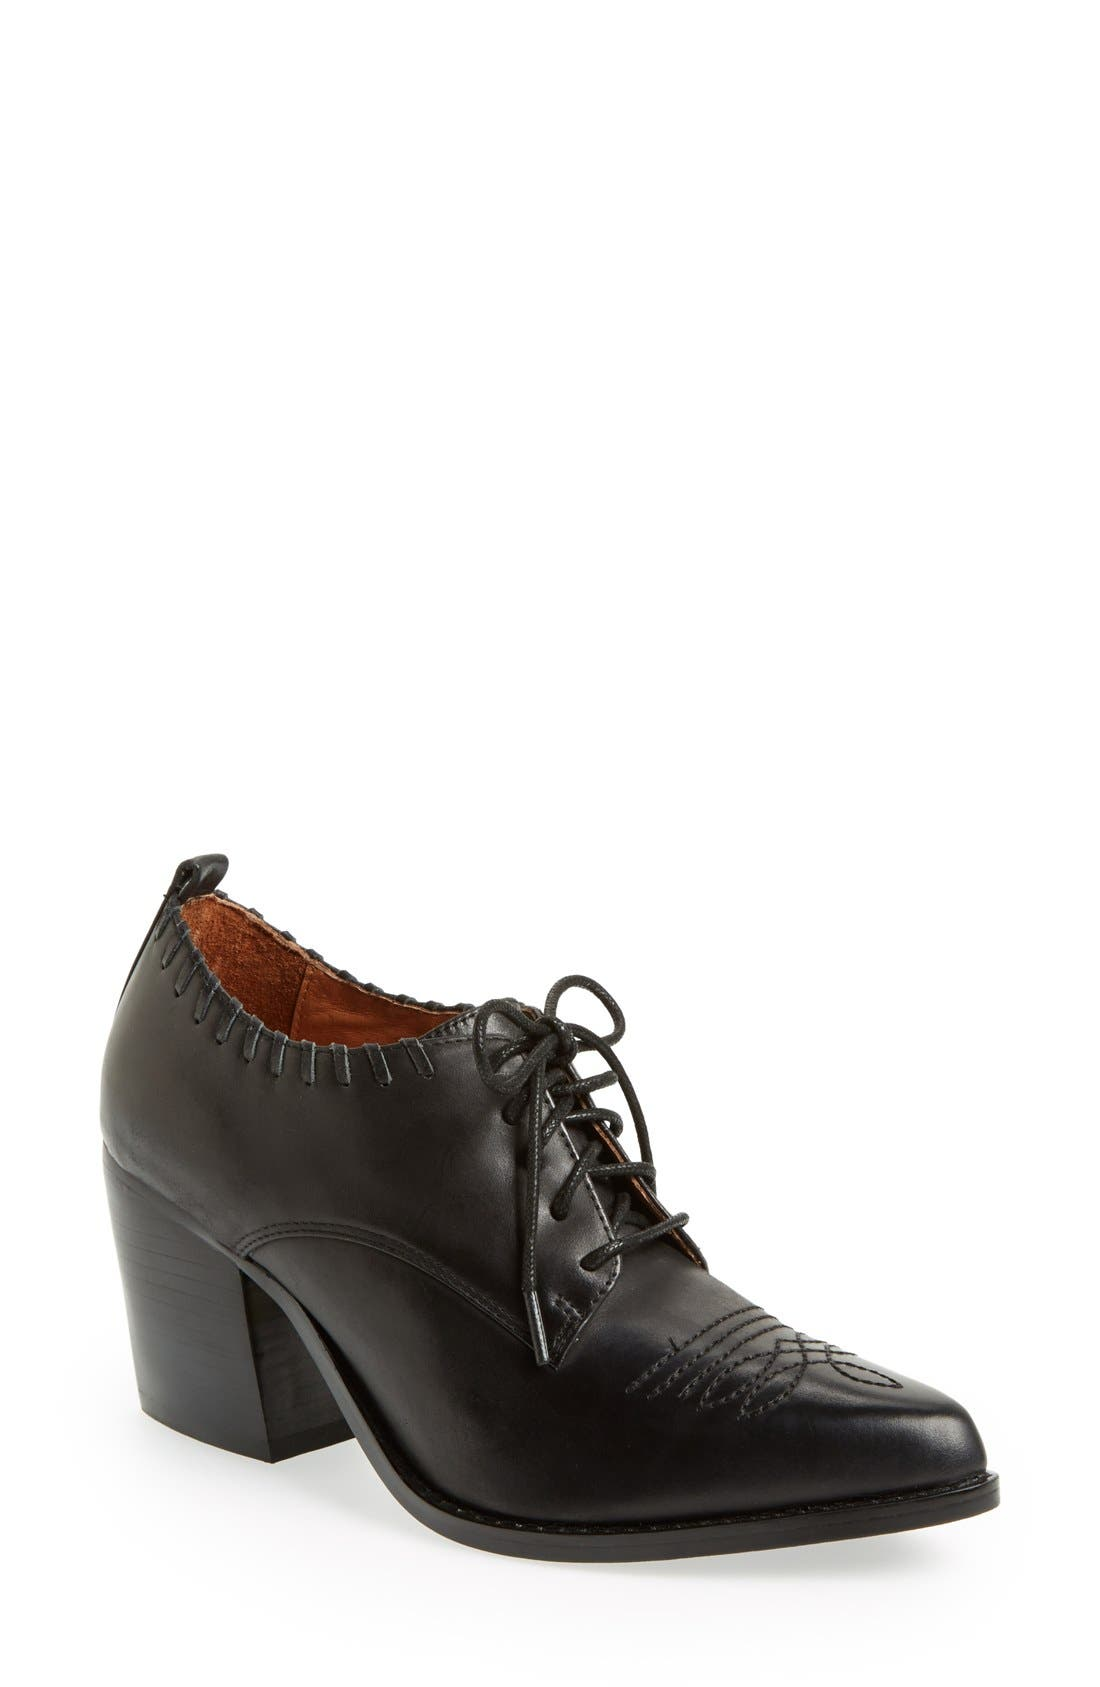 Alternate Image 1 Selected - Jeffrey Campbell 'Wilkes' Pointy Toe Bootie (Women)